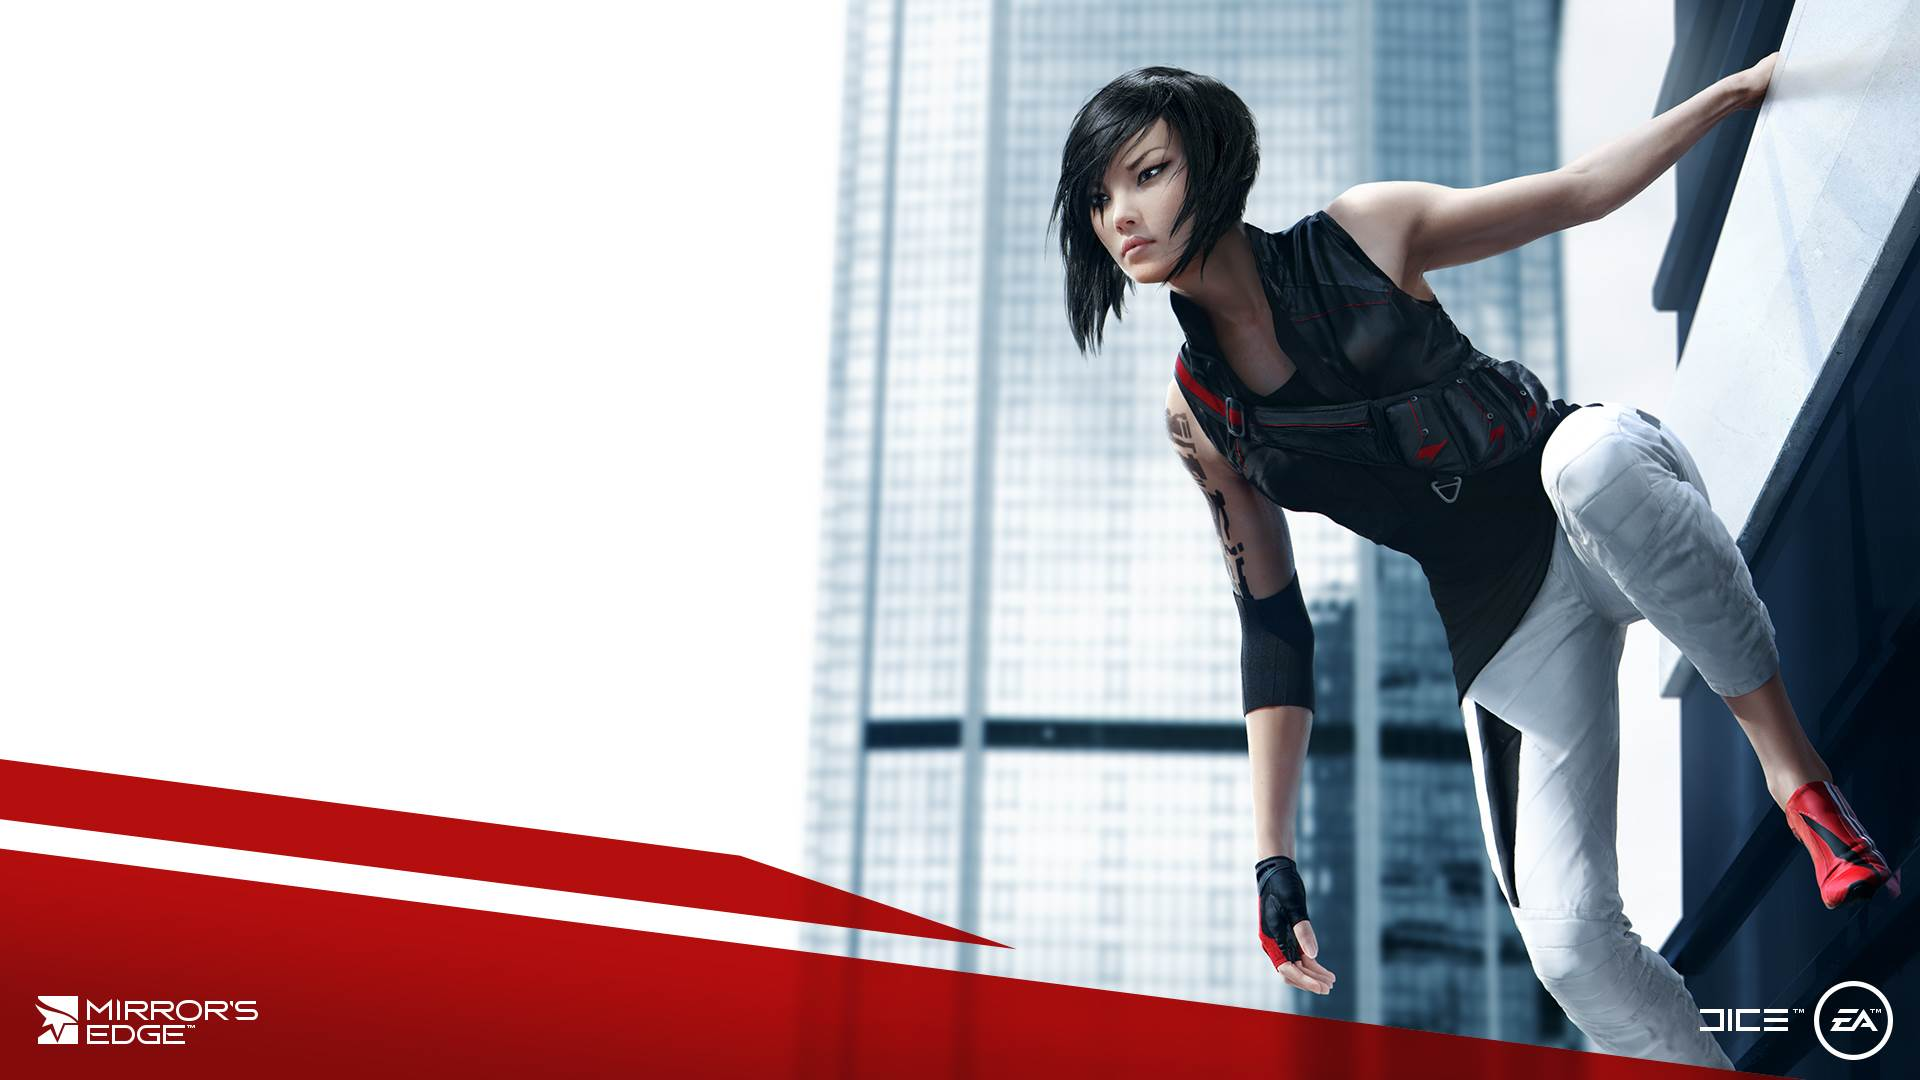 mirrors edge 2 hd wallpapers